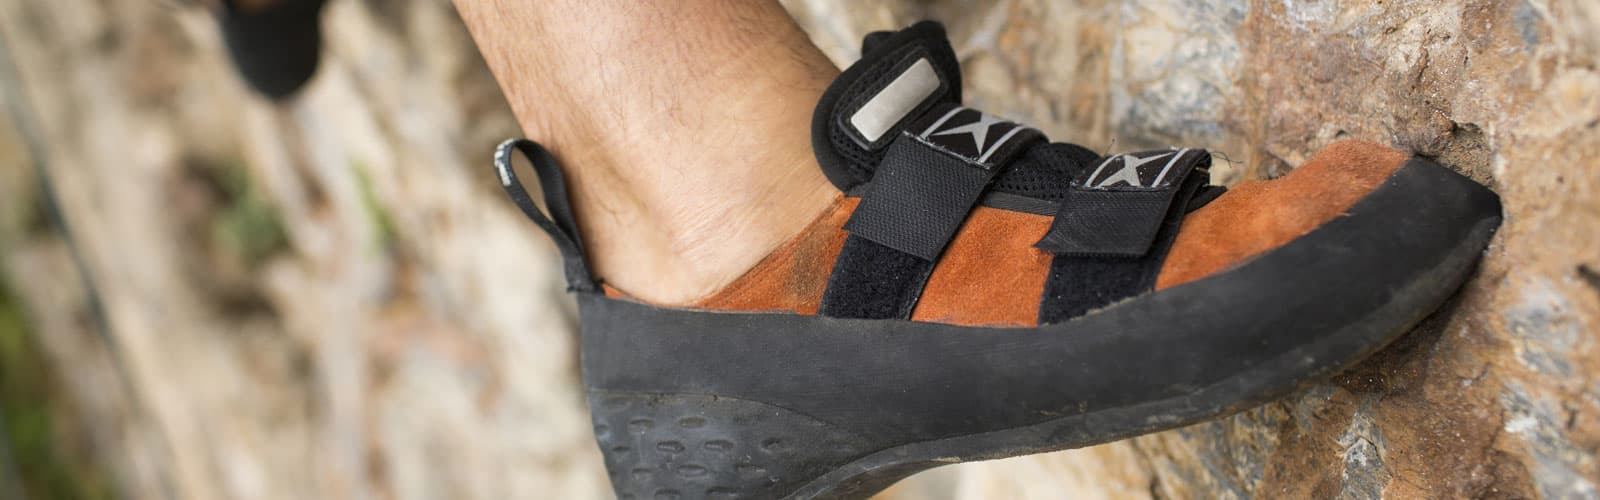 Climbing Shoes and Clothing